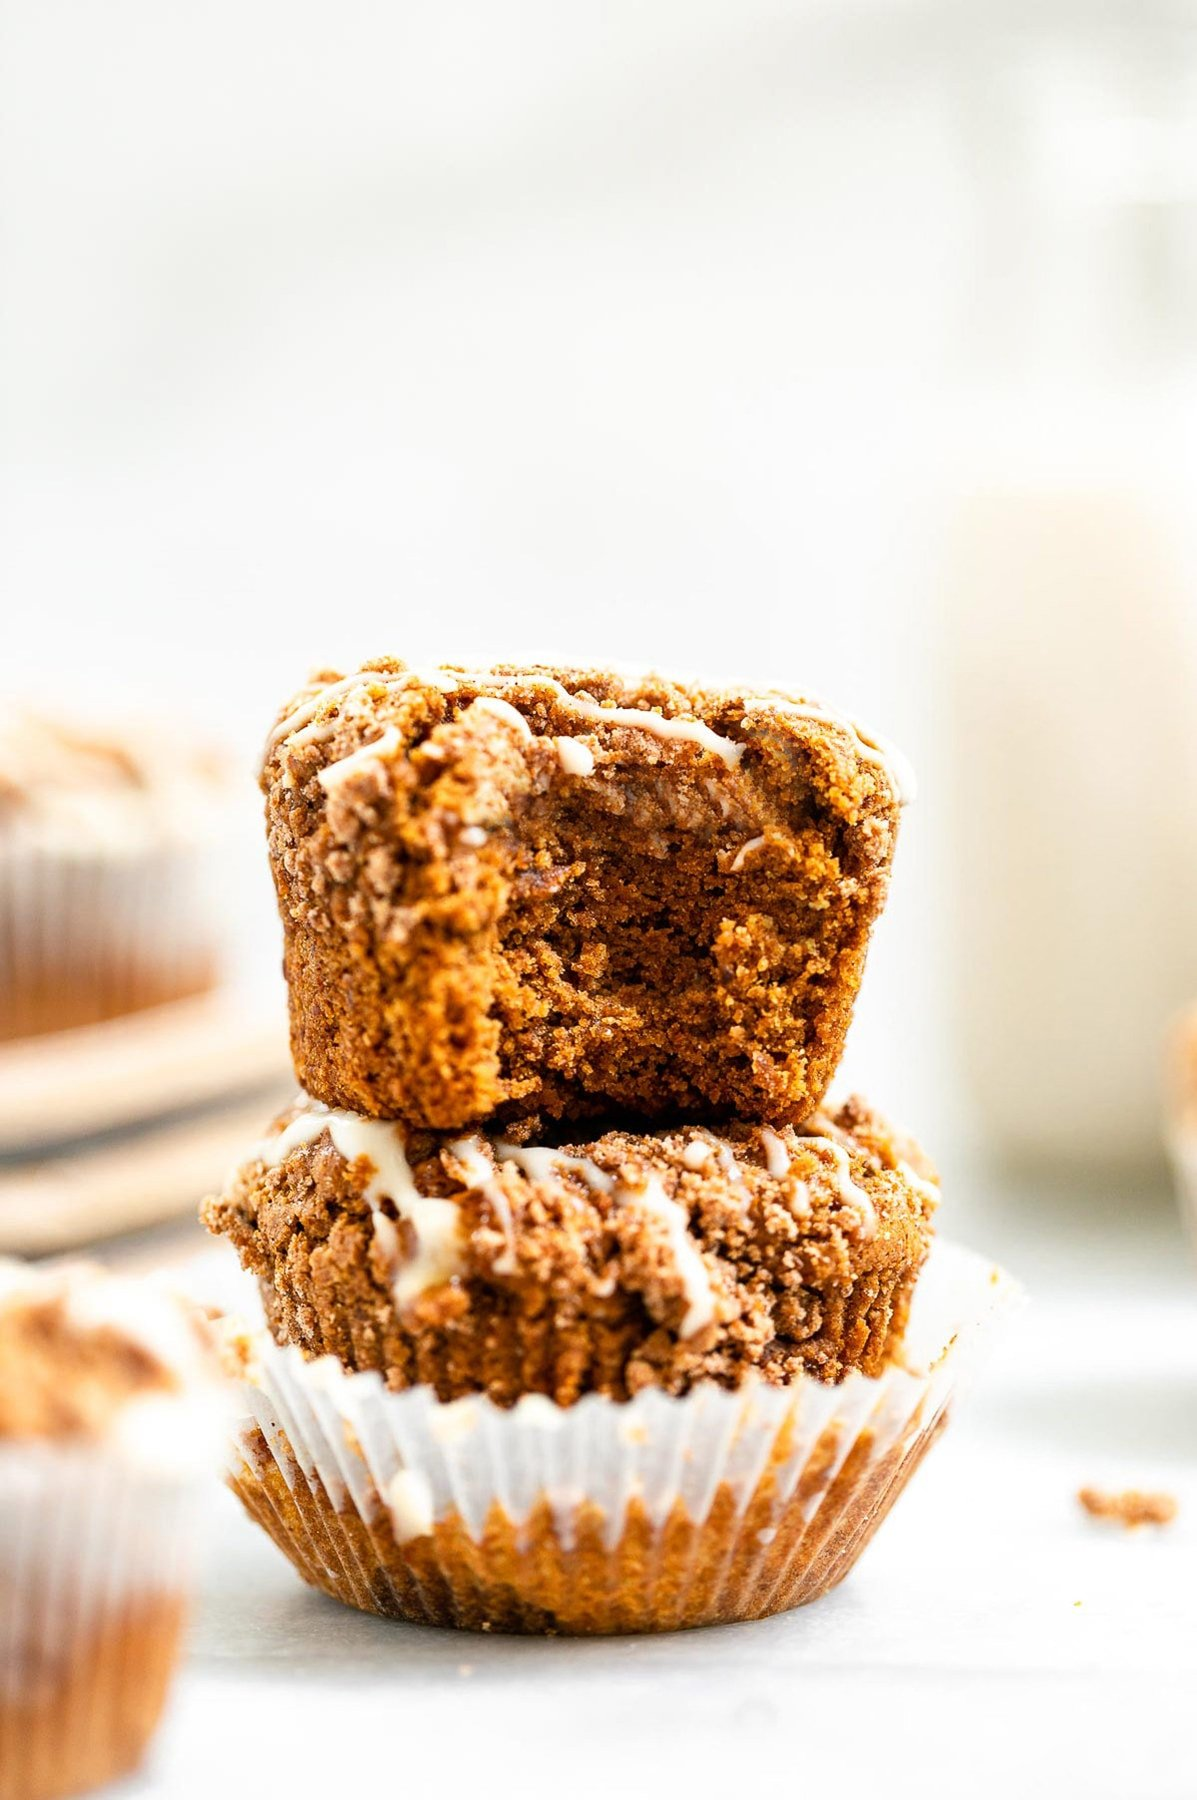 Two muffins stacked on each other with a bite taken out.